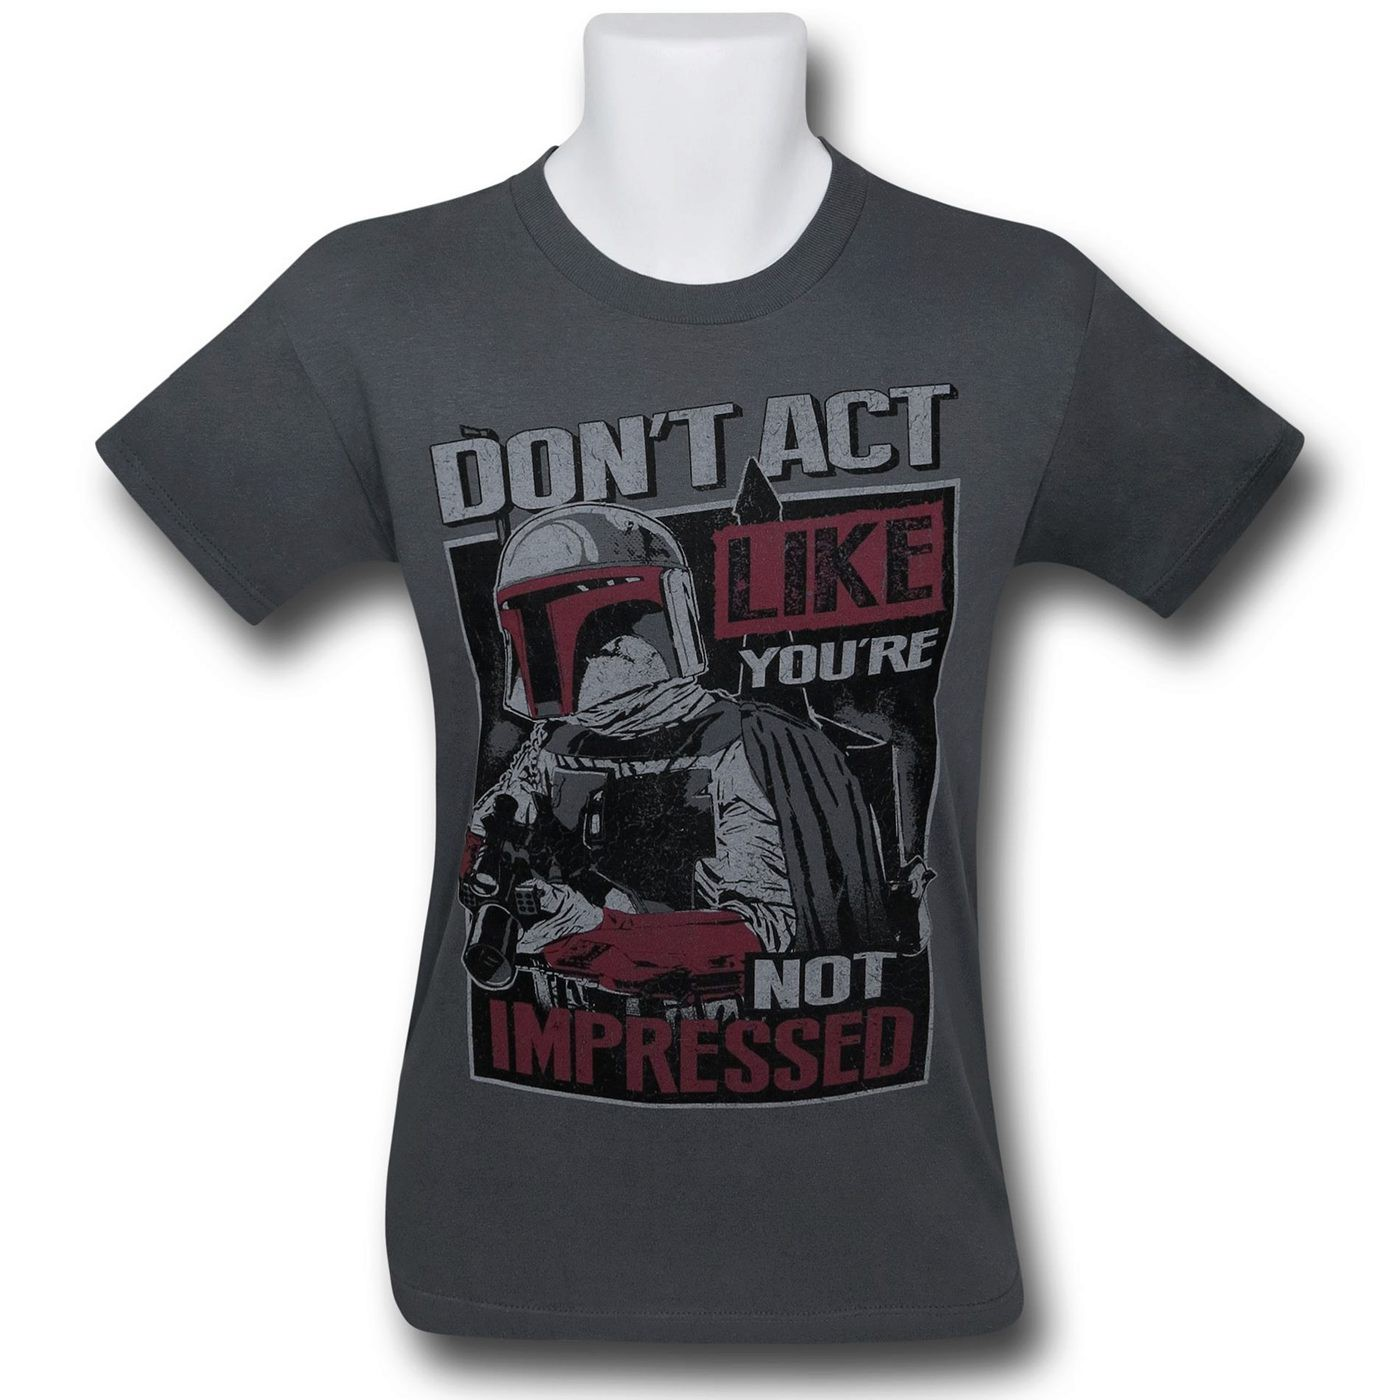 Star Wars Boba Fett Impressed T-Shirt